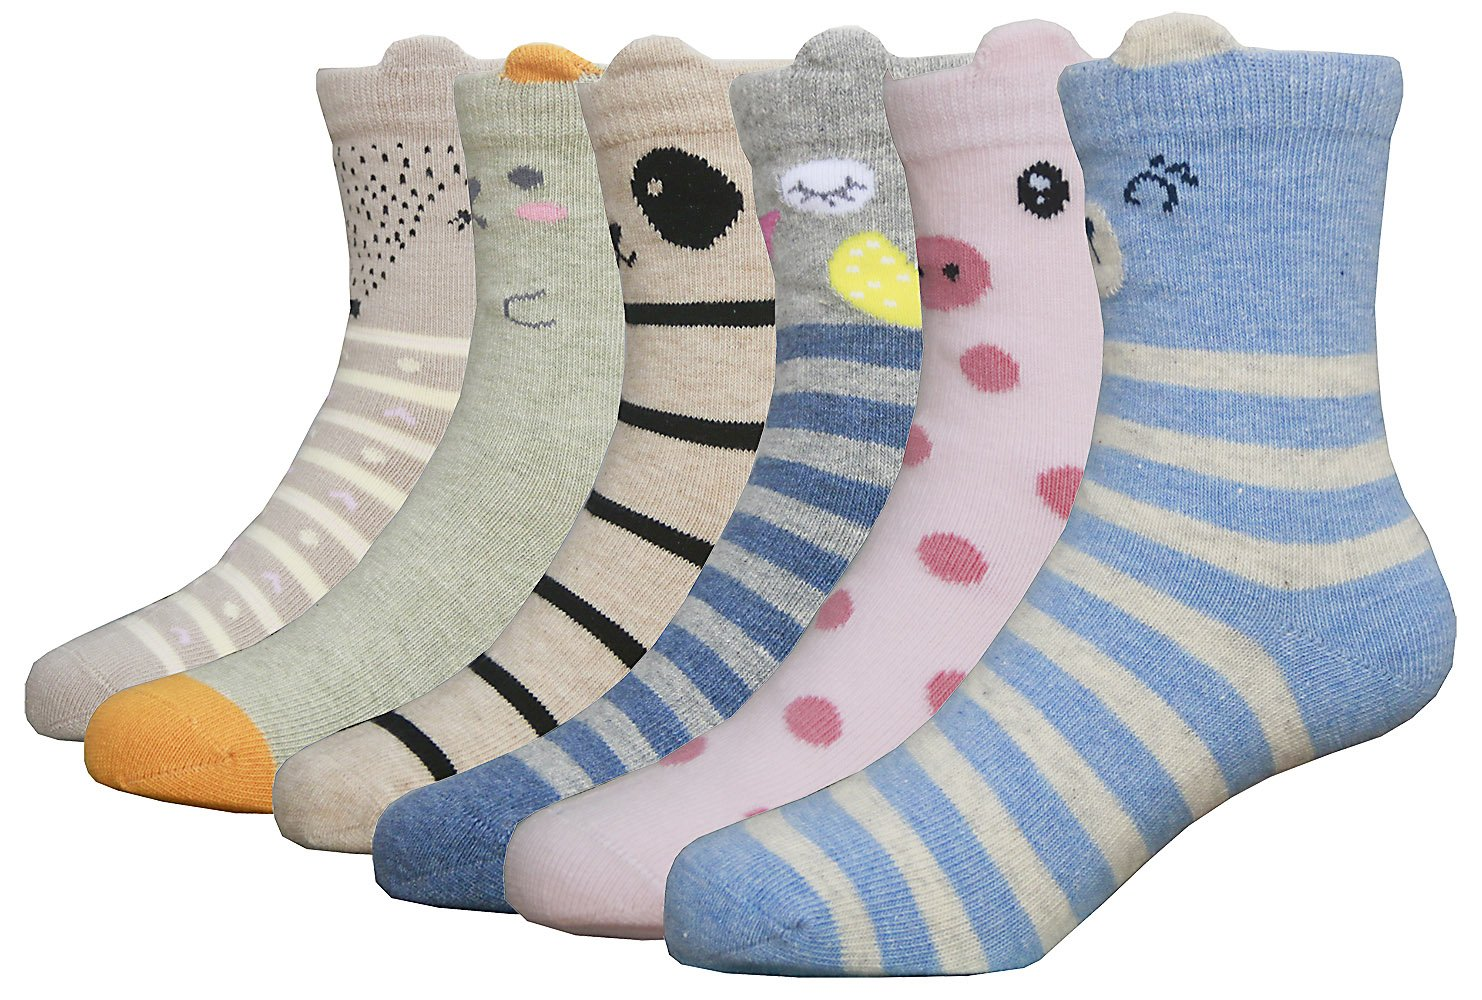 HzCodelo Kids Toddler Big Little Girls Fashion Cotton Crew Seamless Socks -6 Pairs,Multicolor,Shoe size 12.5-3/L by HzFluo.Codelo (Image #2)